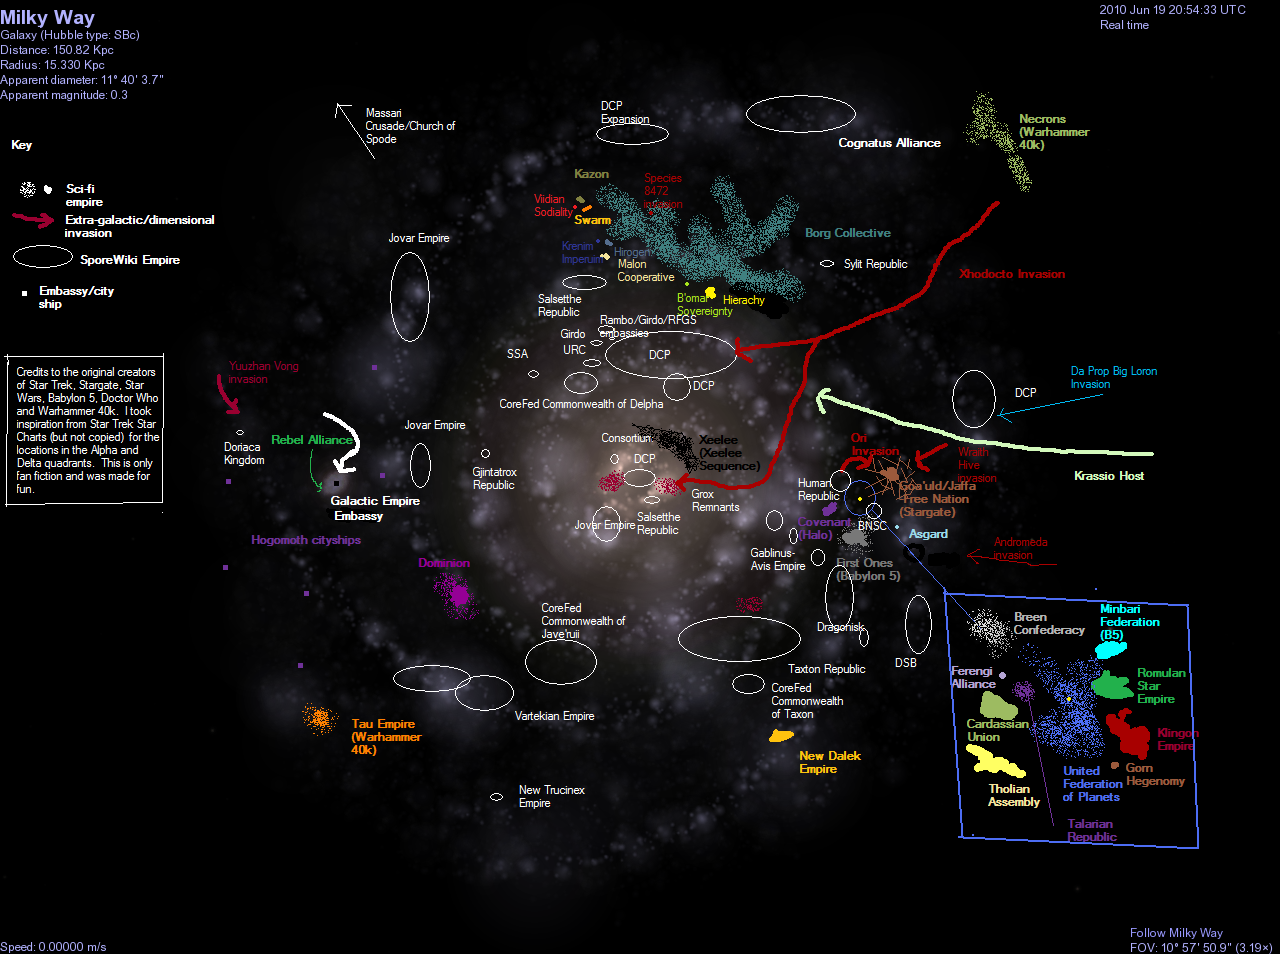 Detailed Milky Way Galaxy Map Pics About Space